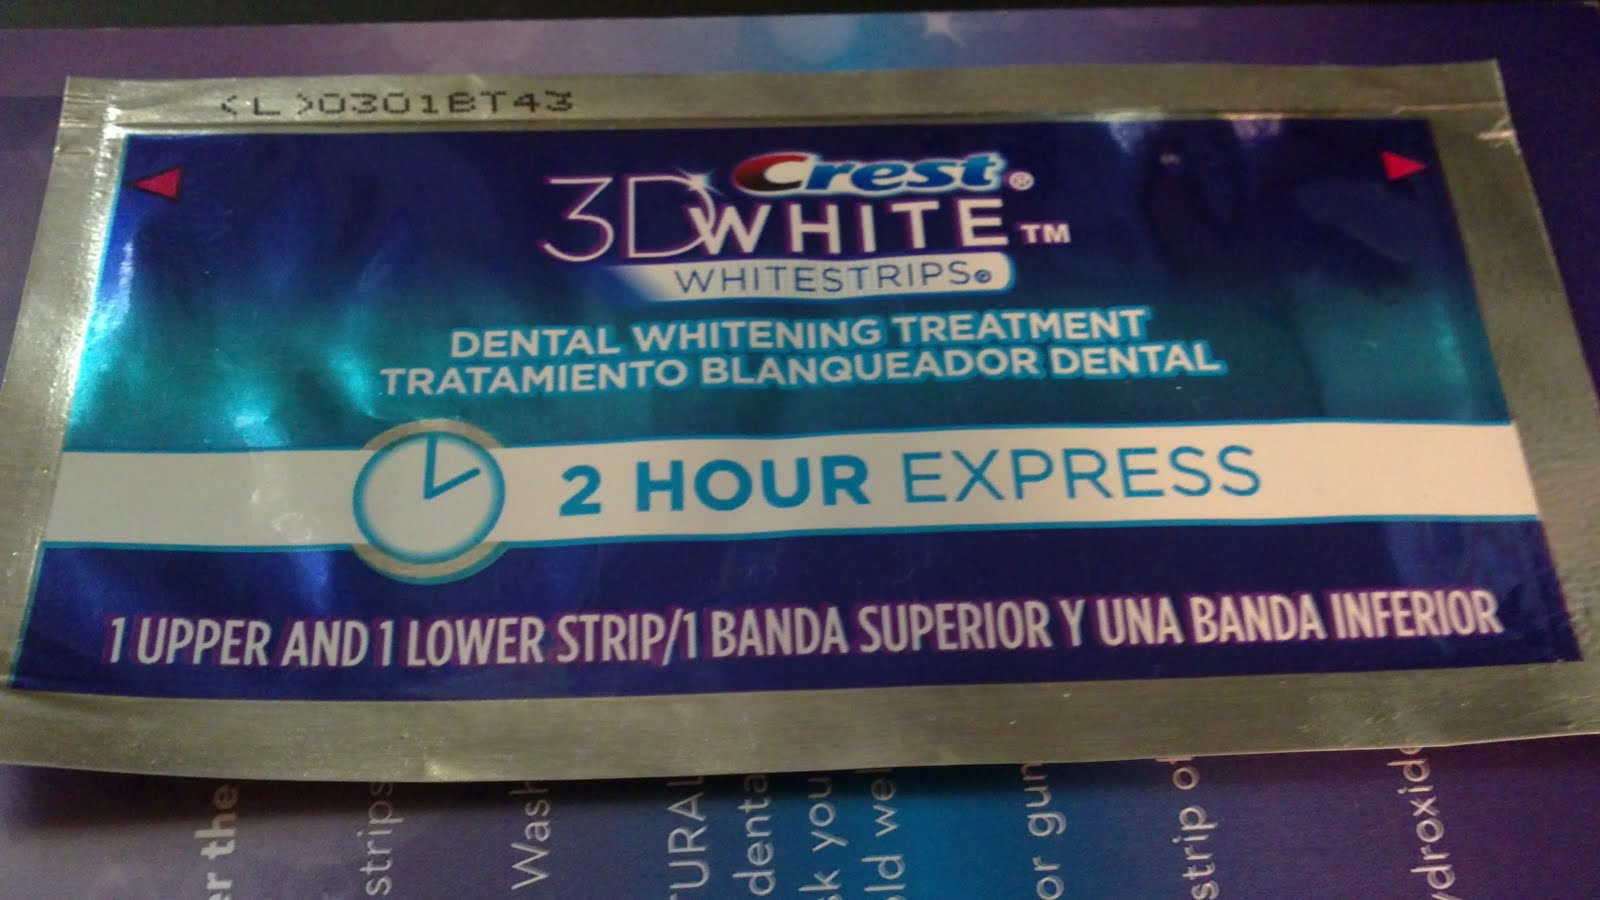 Crest 3d white teeth whitening review and giveaway llg